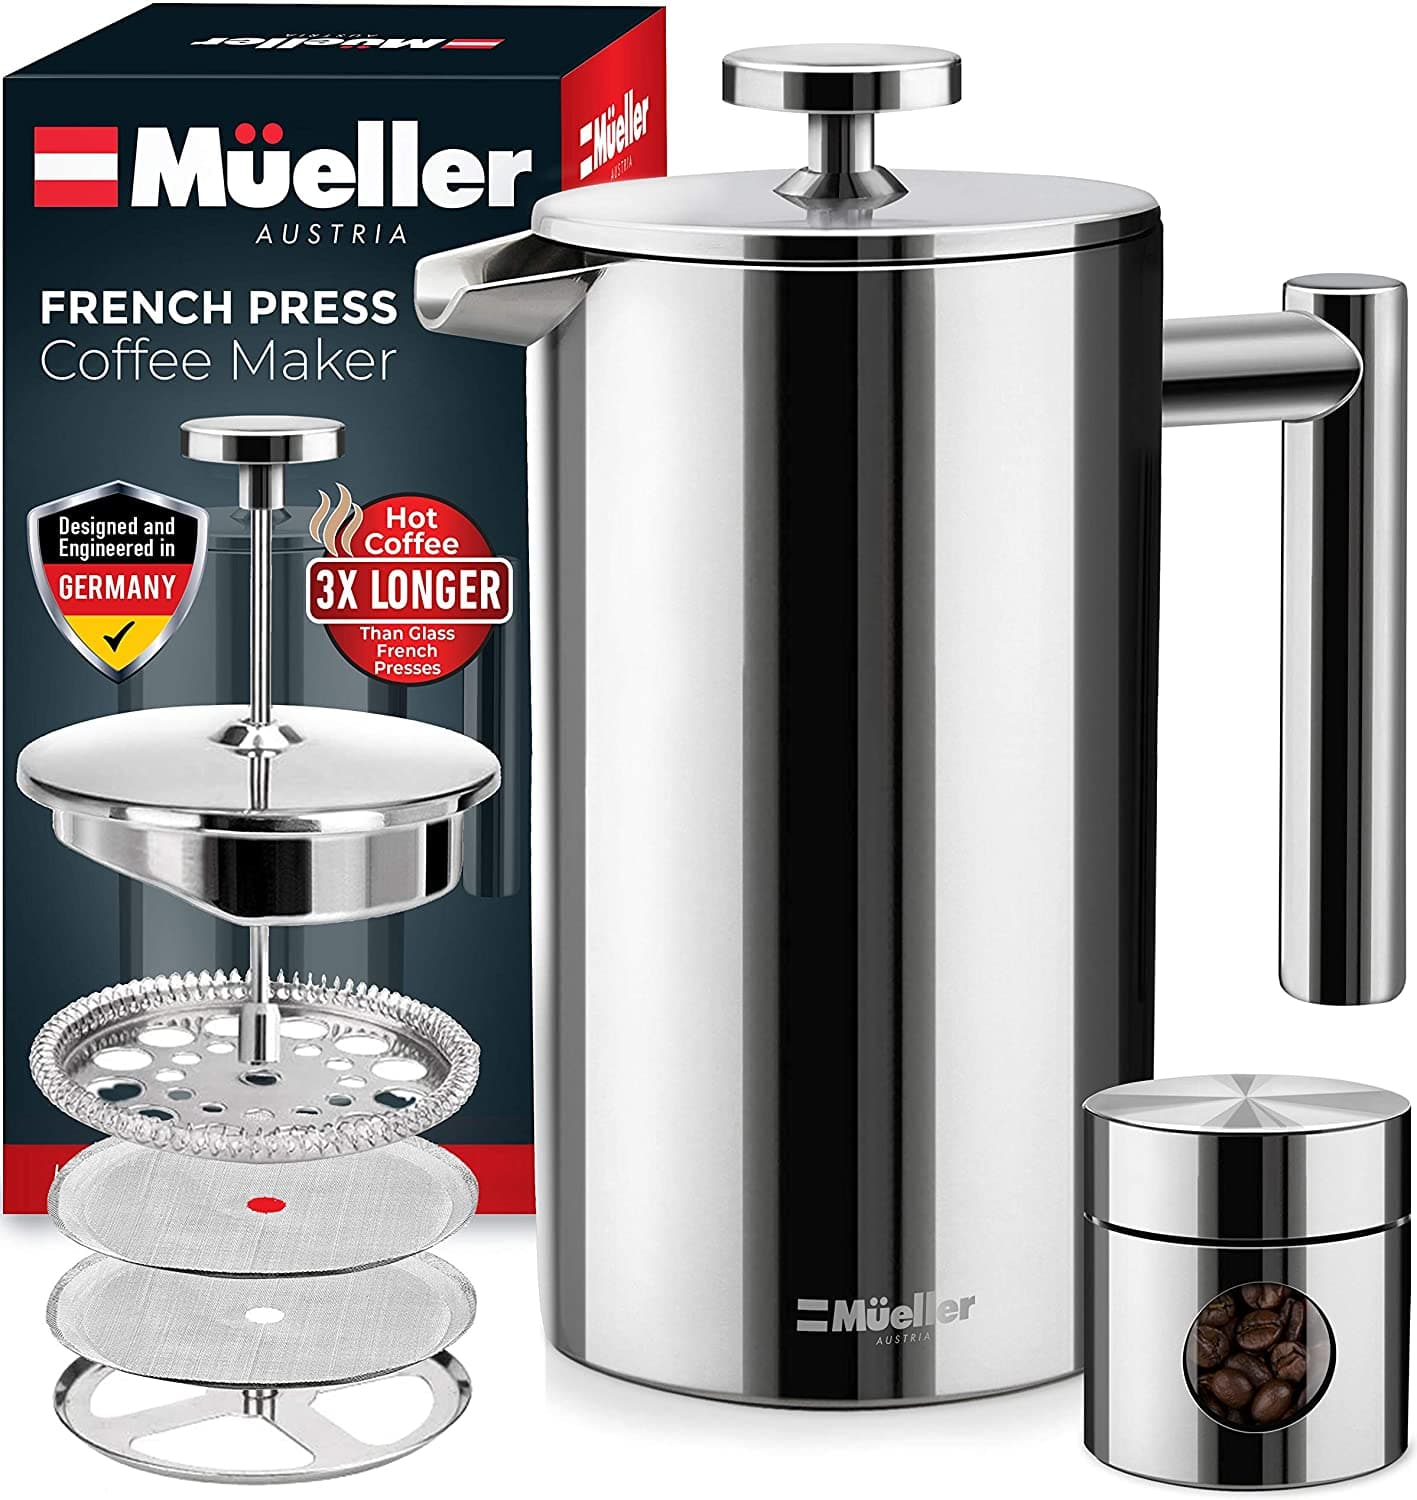 Amazon has Mueller French Press Heavier Duty Double Insulated 310 Stainless Steel Coffee Maker 4 Level Filtration% No Coffee Grounds Guarantee $18.97 after clip coupon